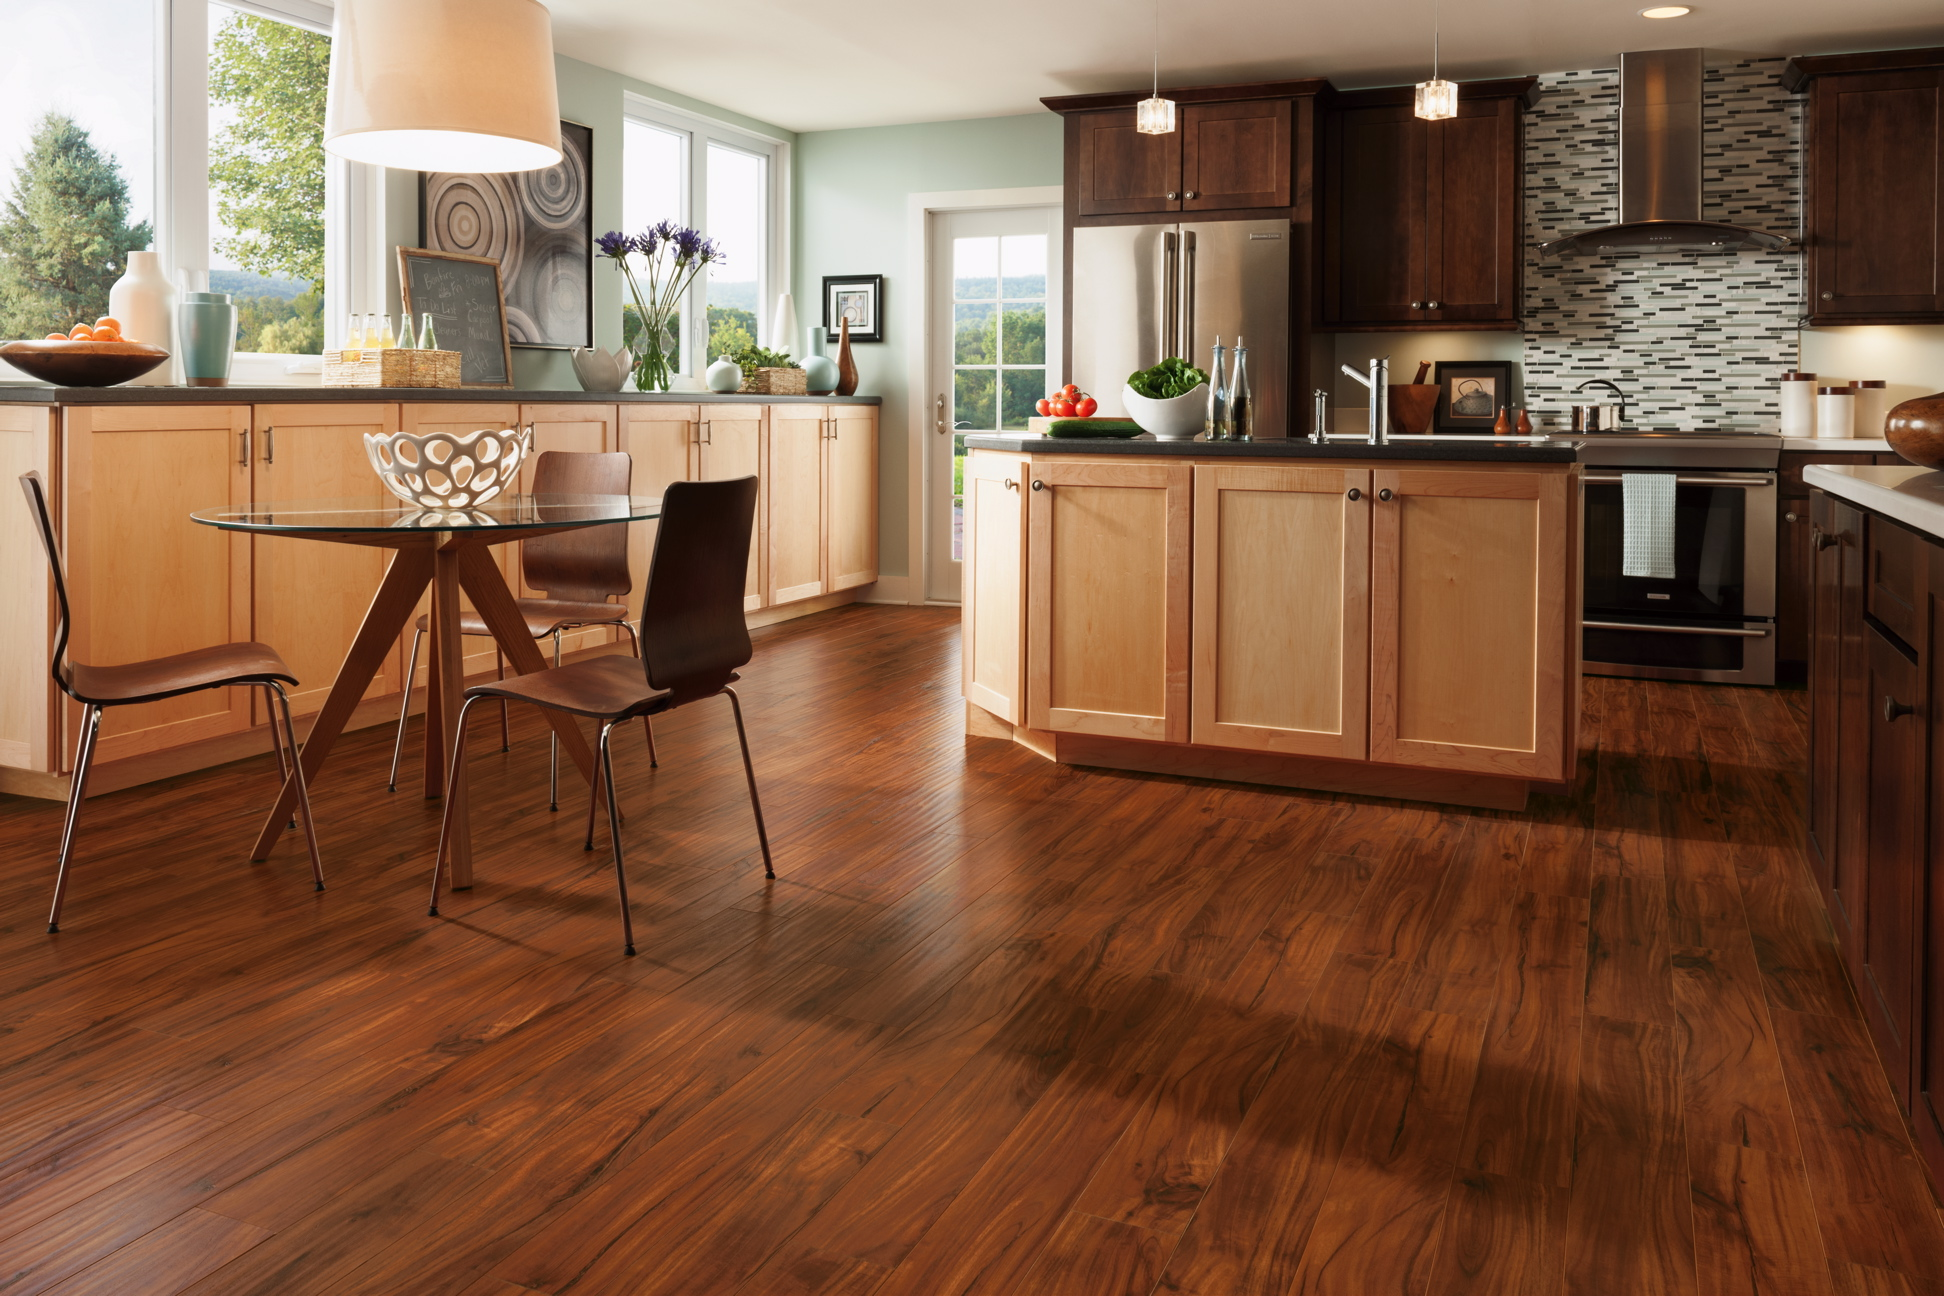 Rethink what 39 s possible new laminate floors from - Laminate or wood flooring ...